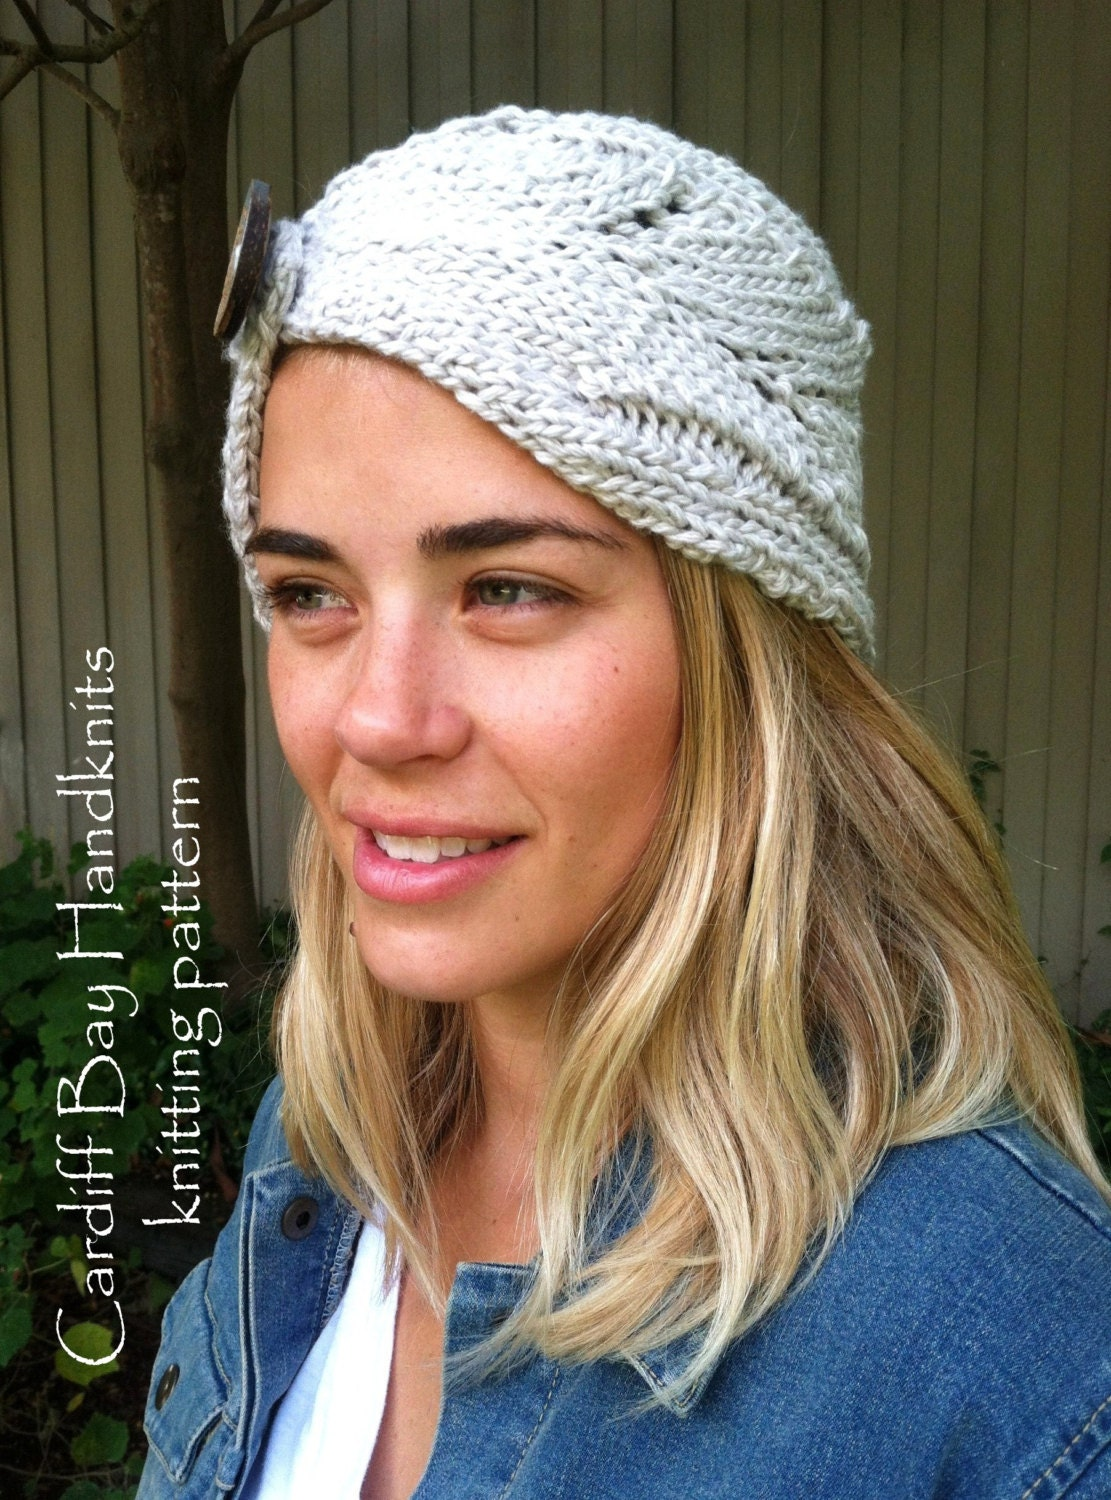 Magnificent Knit Headwrap Pattern Images - Blanket Knitting Pattern ...